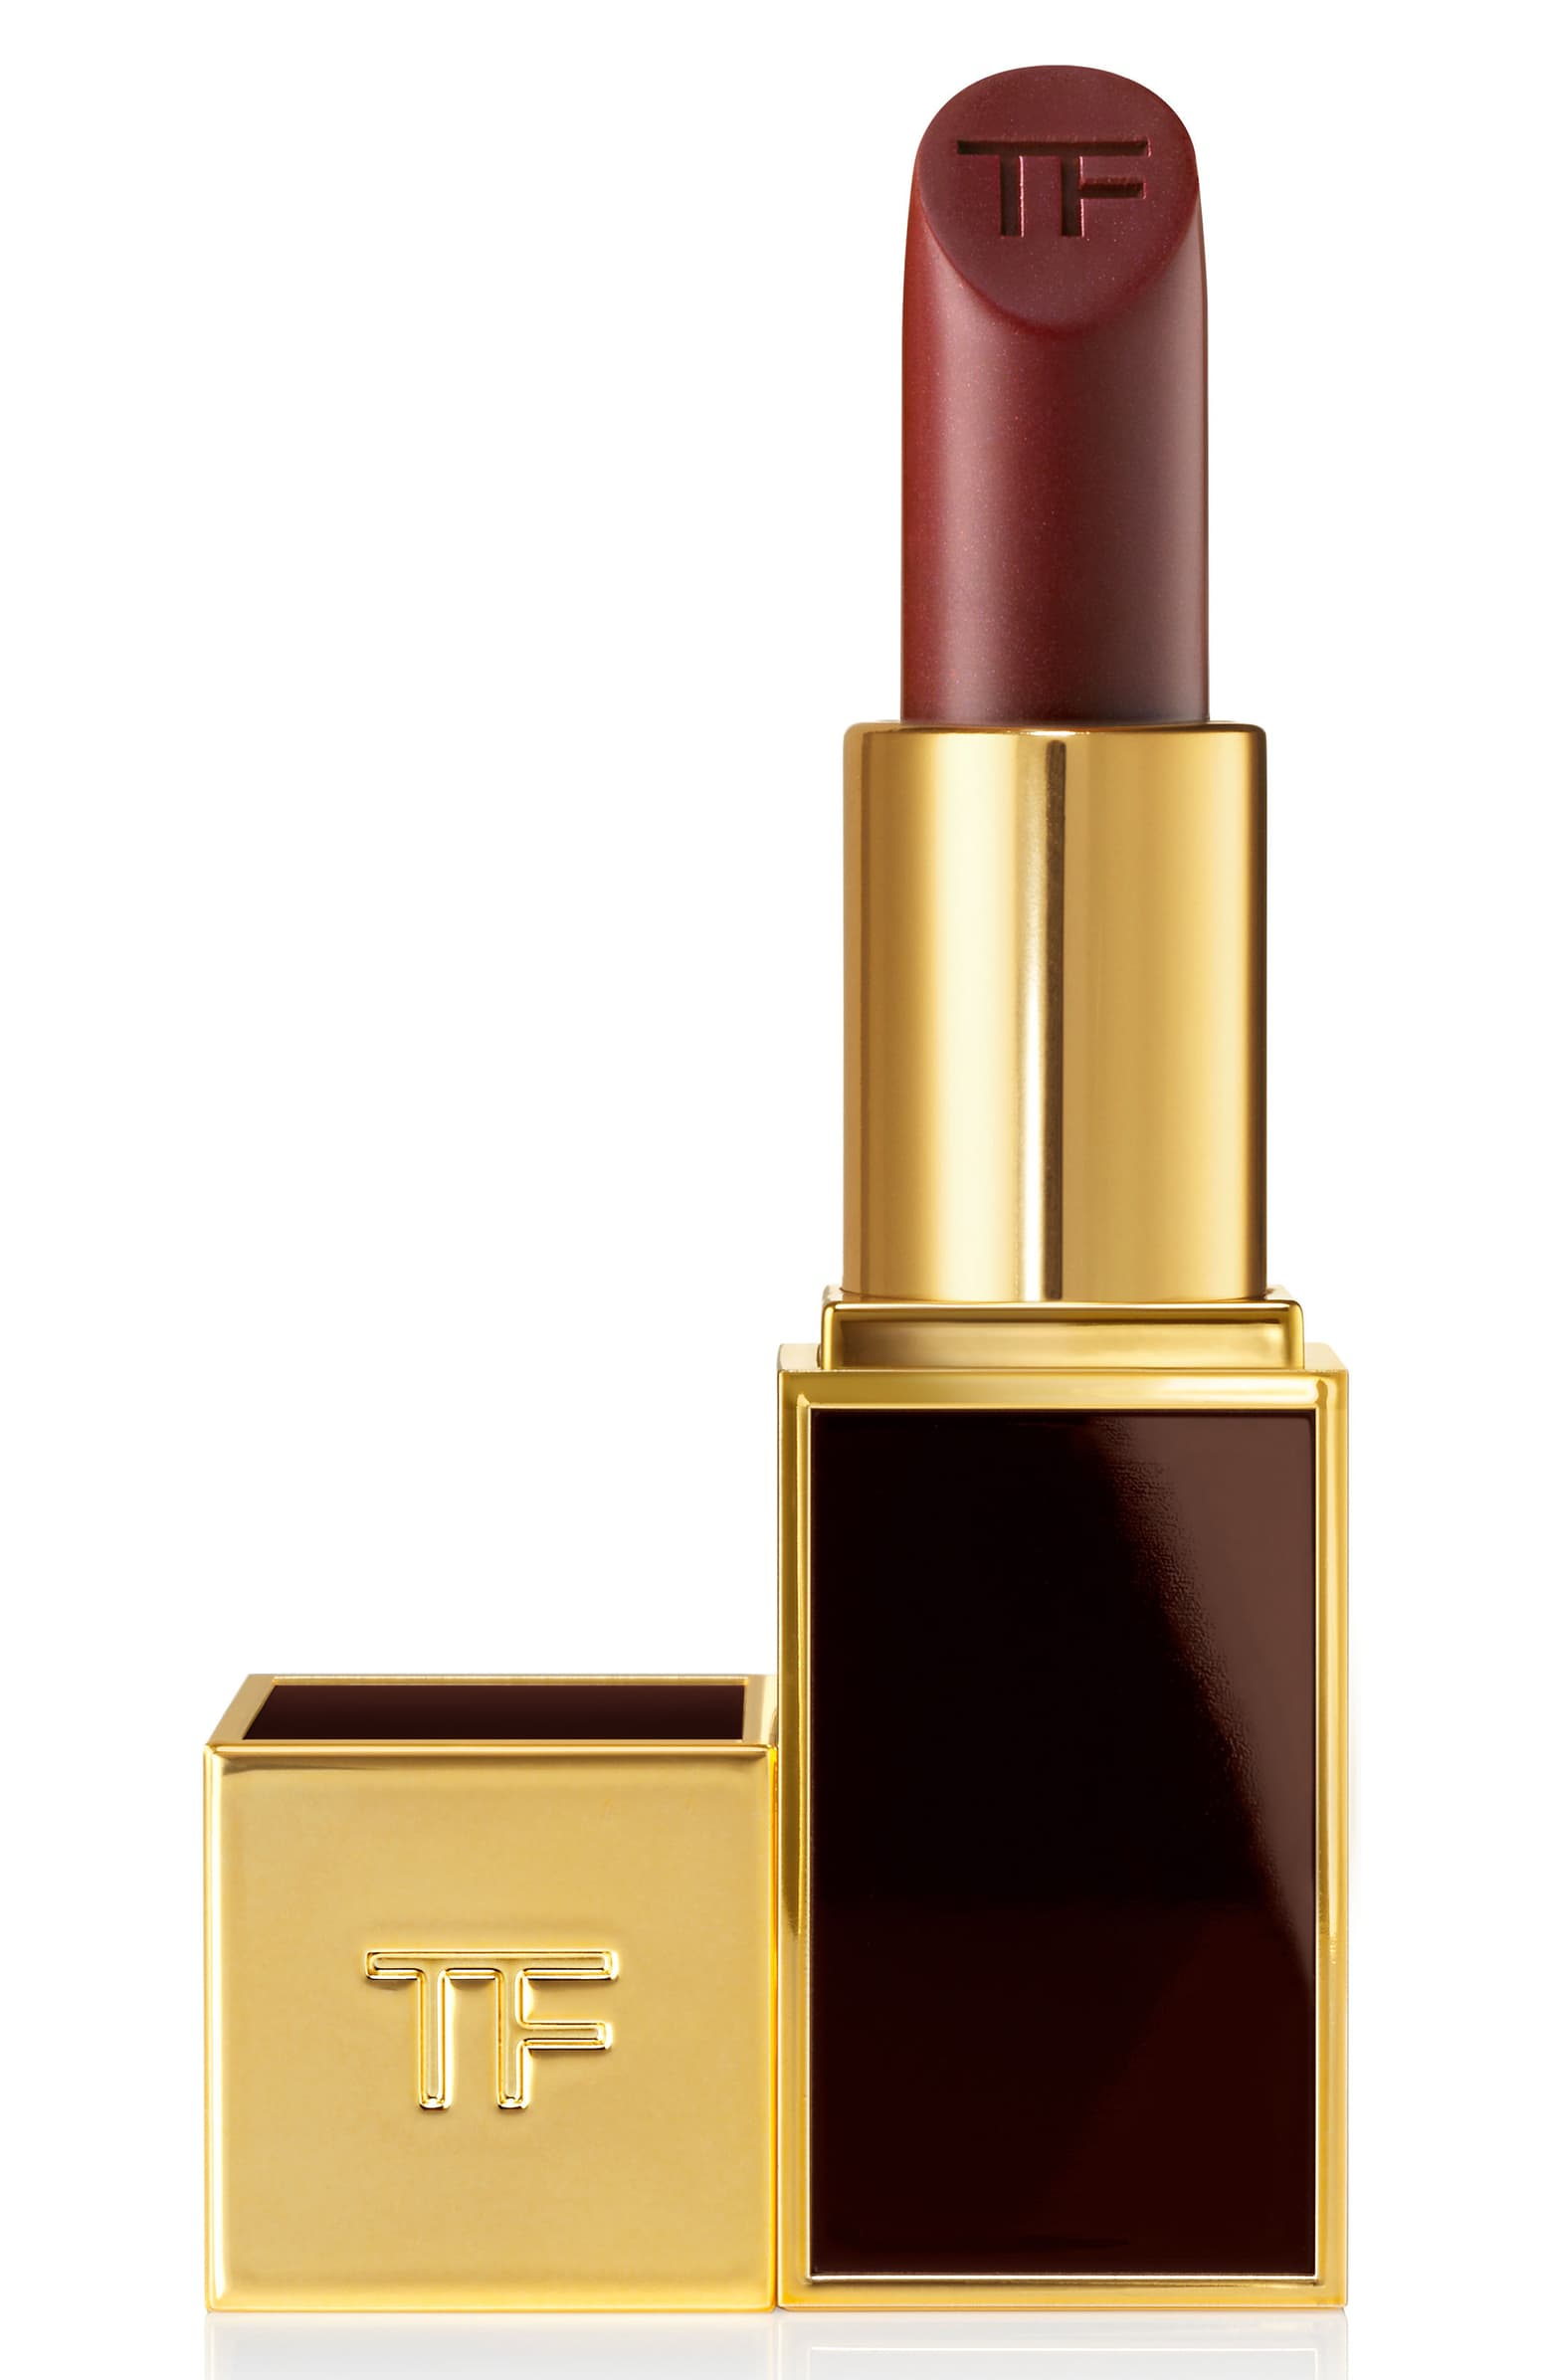 Tom Ford Lip Color in Impassioned, Ruffled Apron, weekly finds